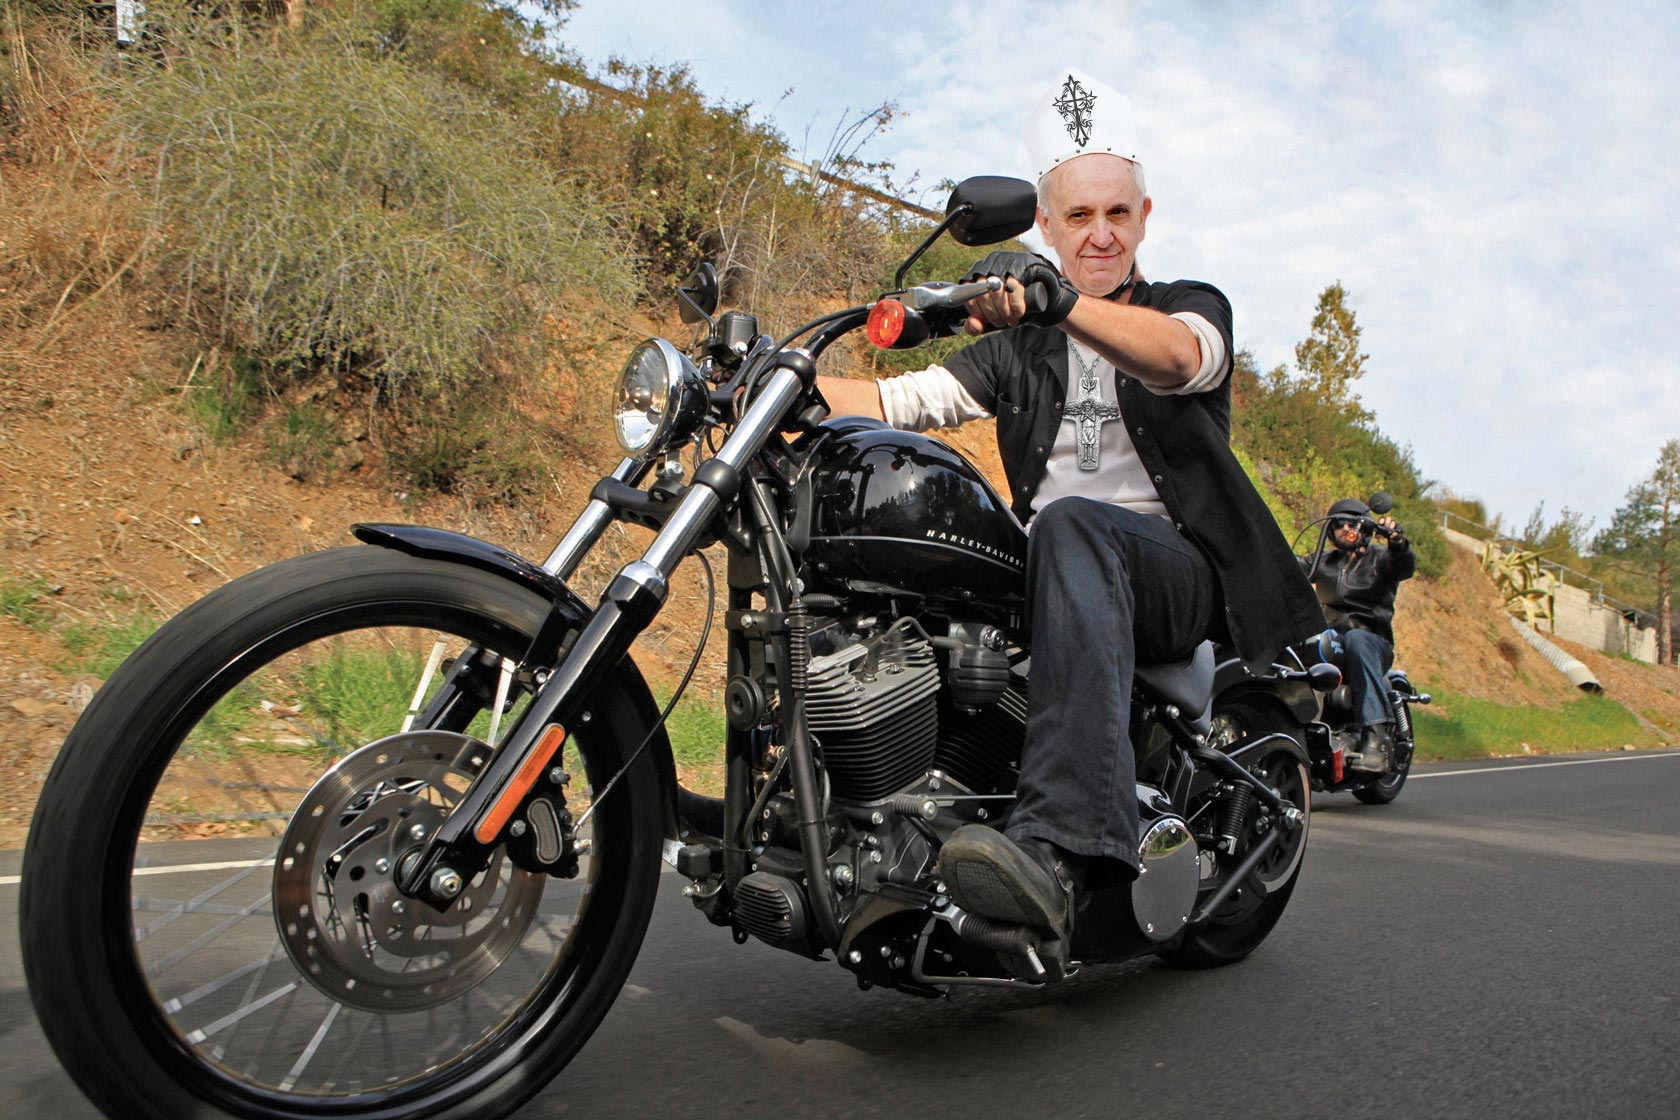 Farmers House Insurance >> Pope's Harley-Davidson Fetches $329,000 at Auction - Asphalt & Rubber